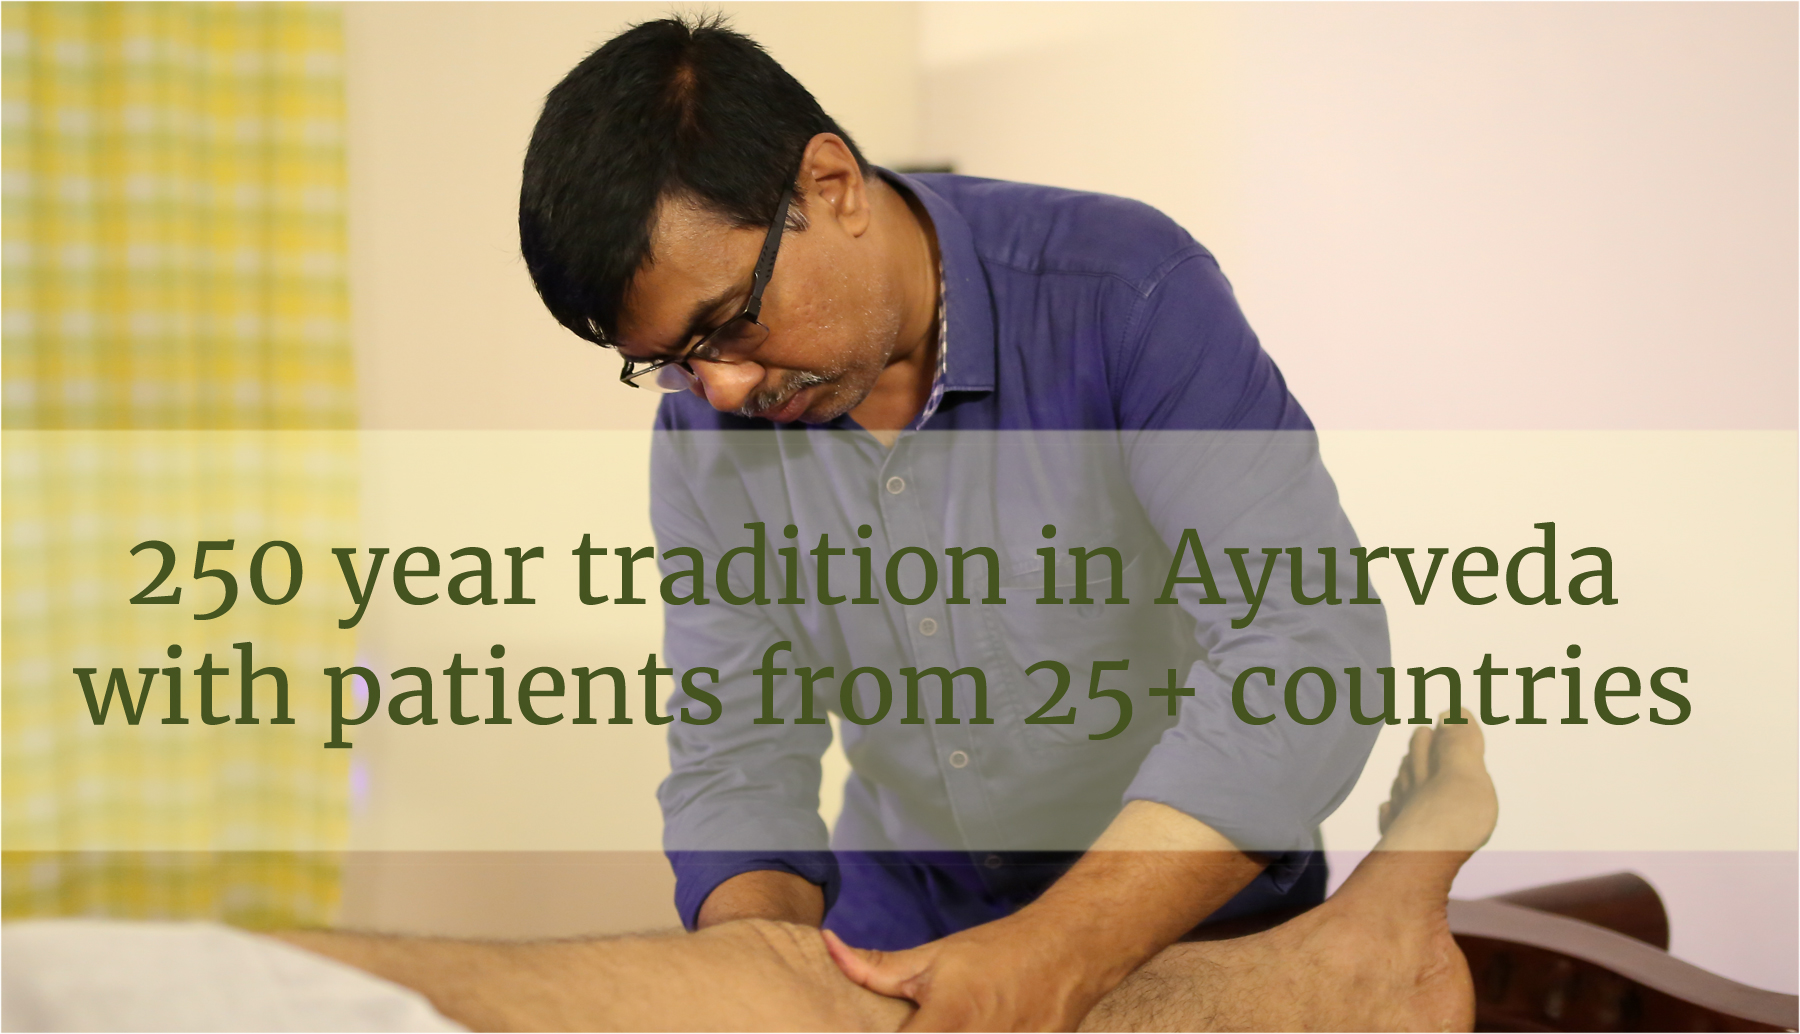 joint-pain-arthritis-treatment-ayurveda